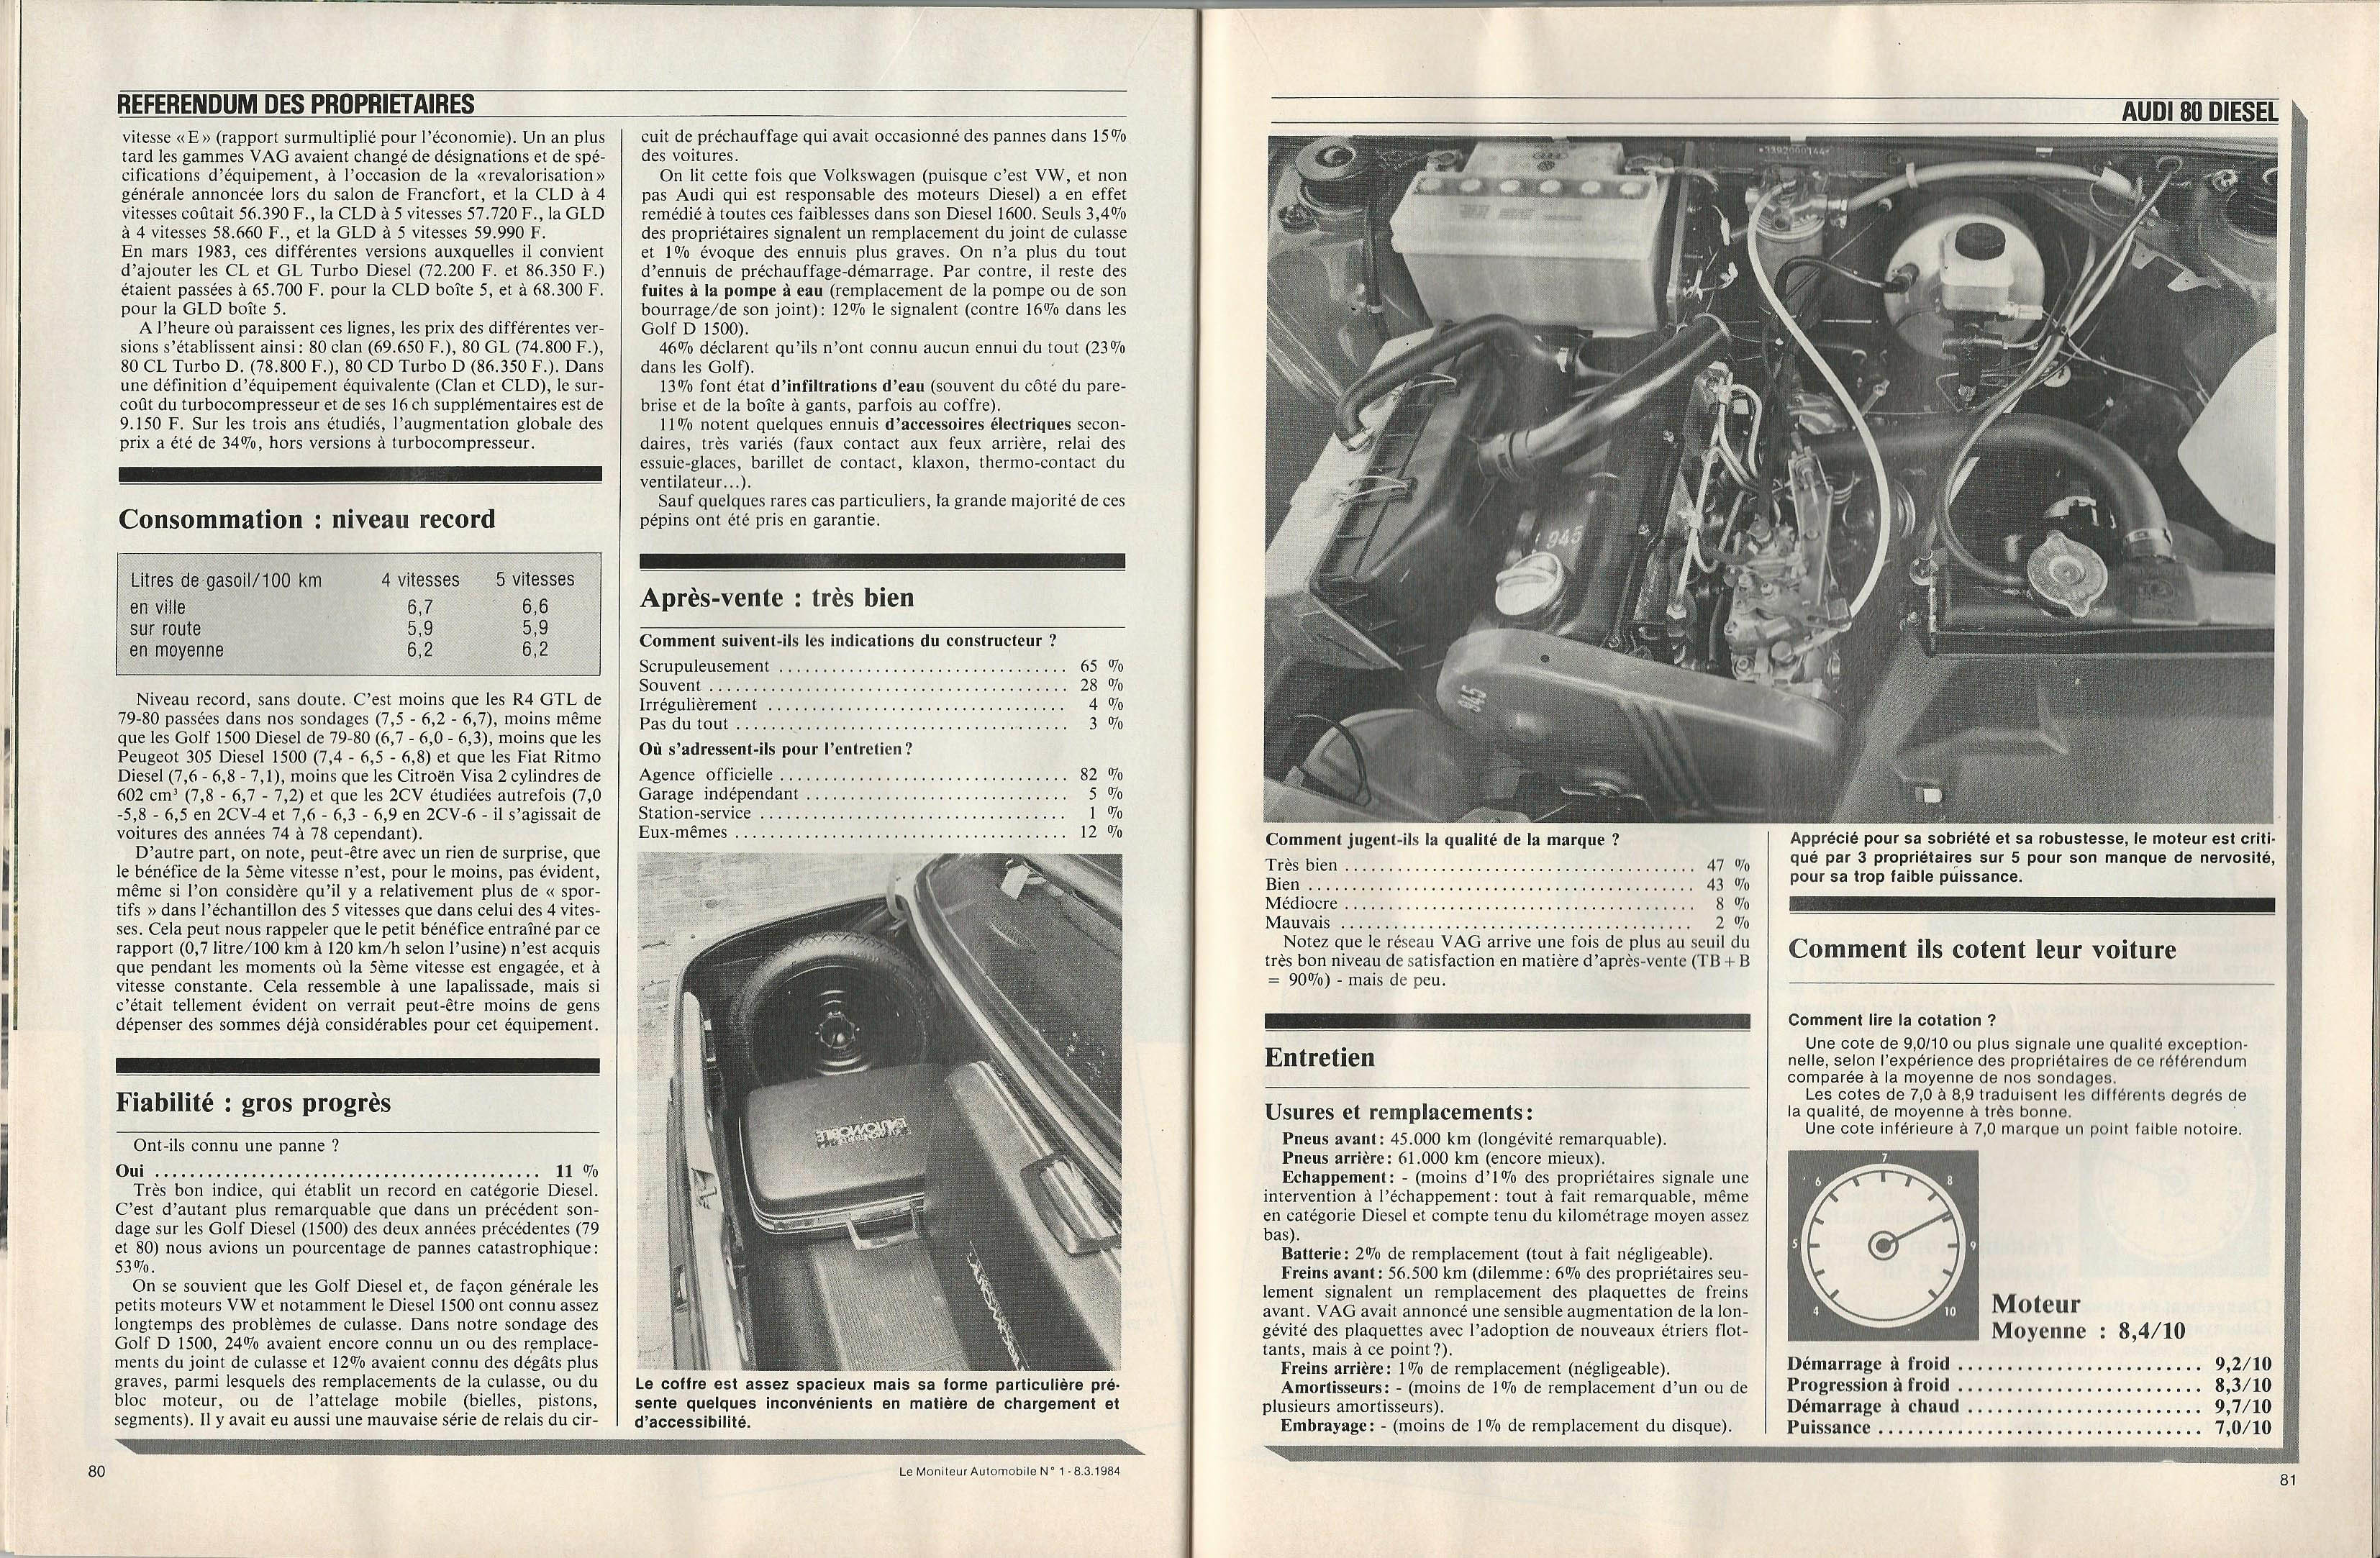 Moniteur Automobile 01 - 08 Mars 1984 (32)